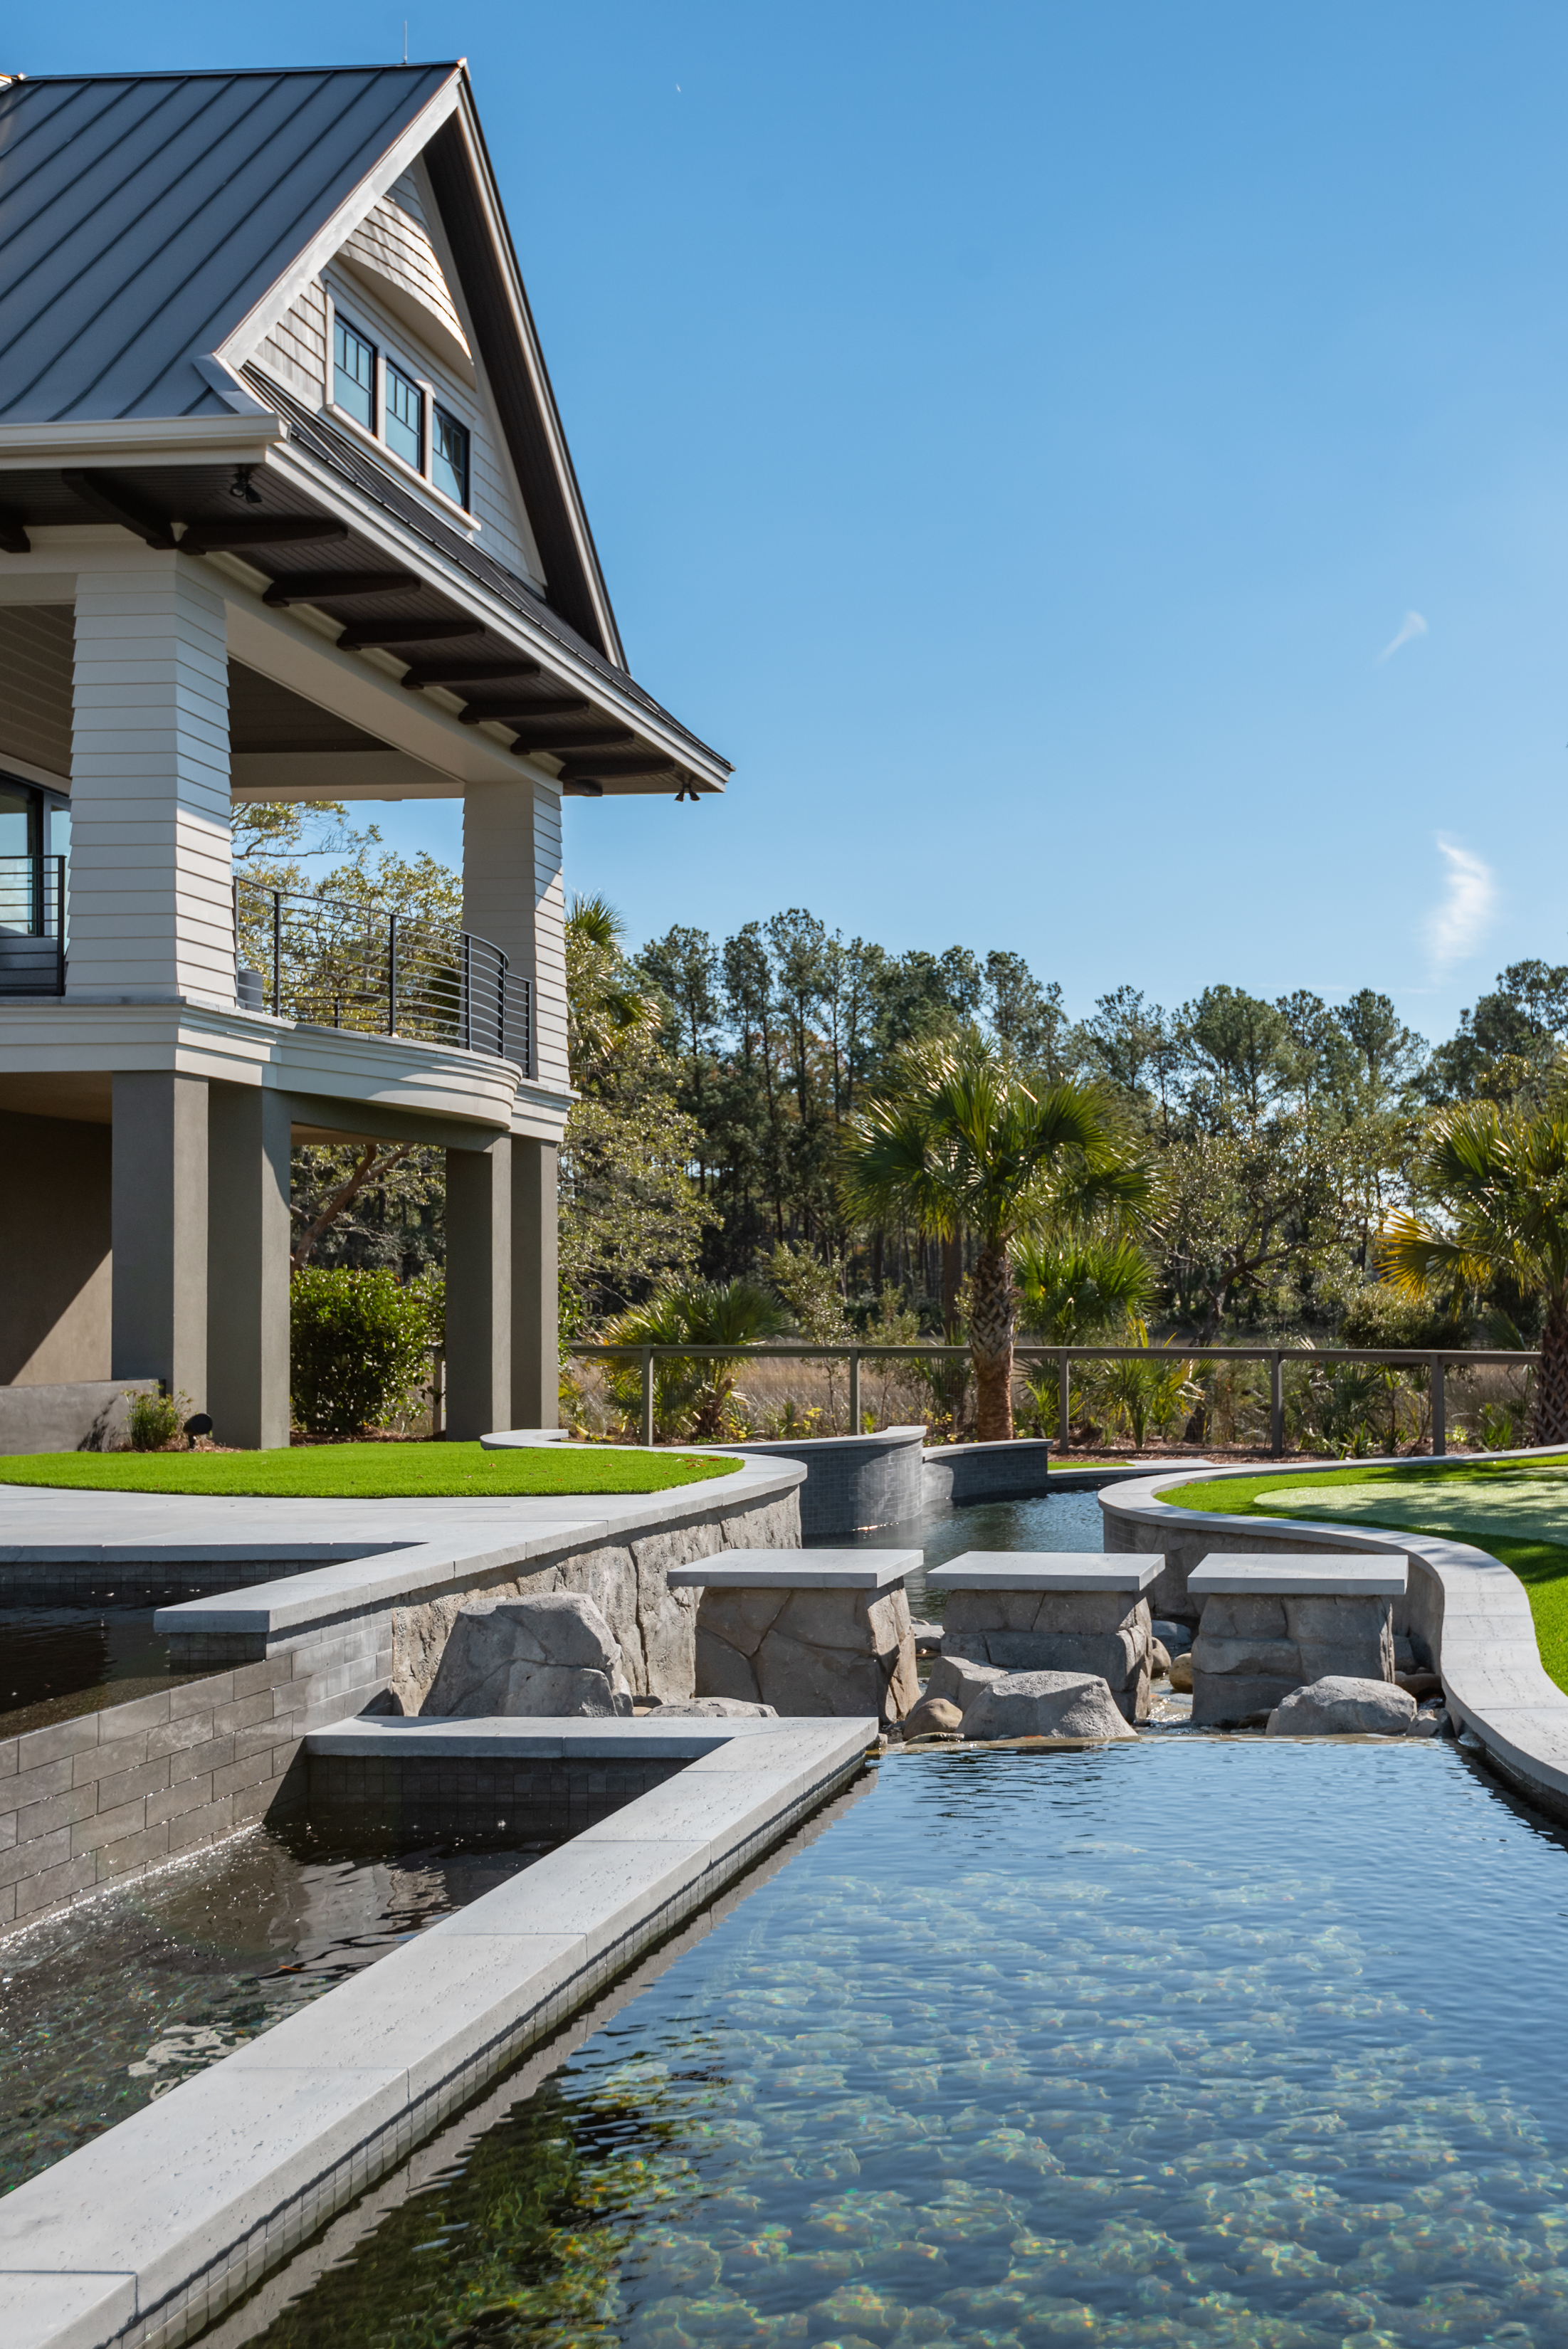 koi pond and outdoor space